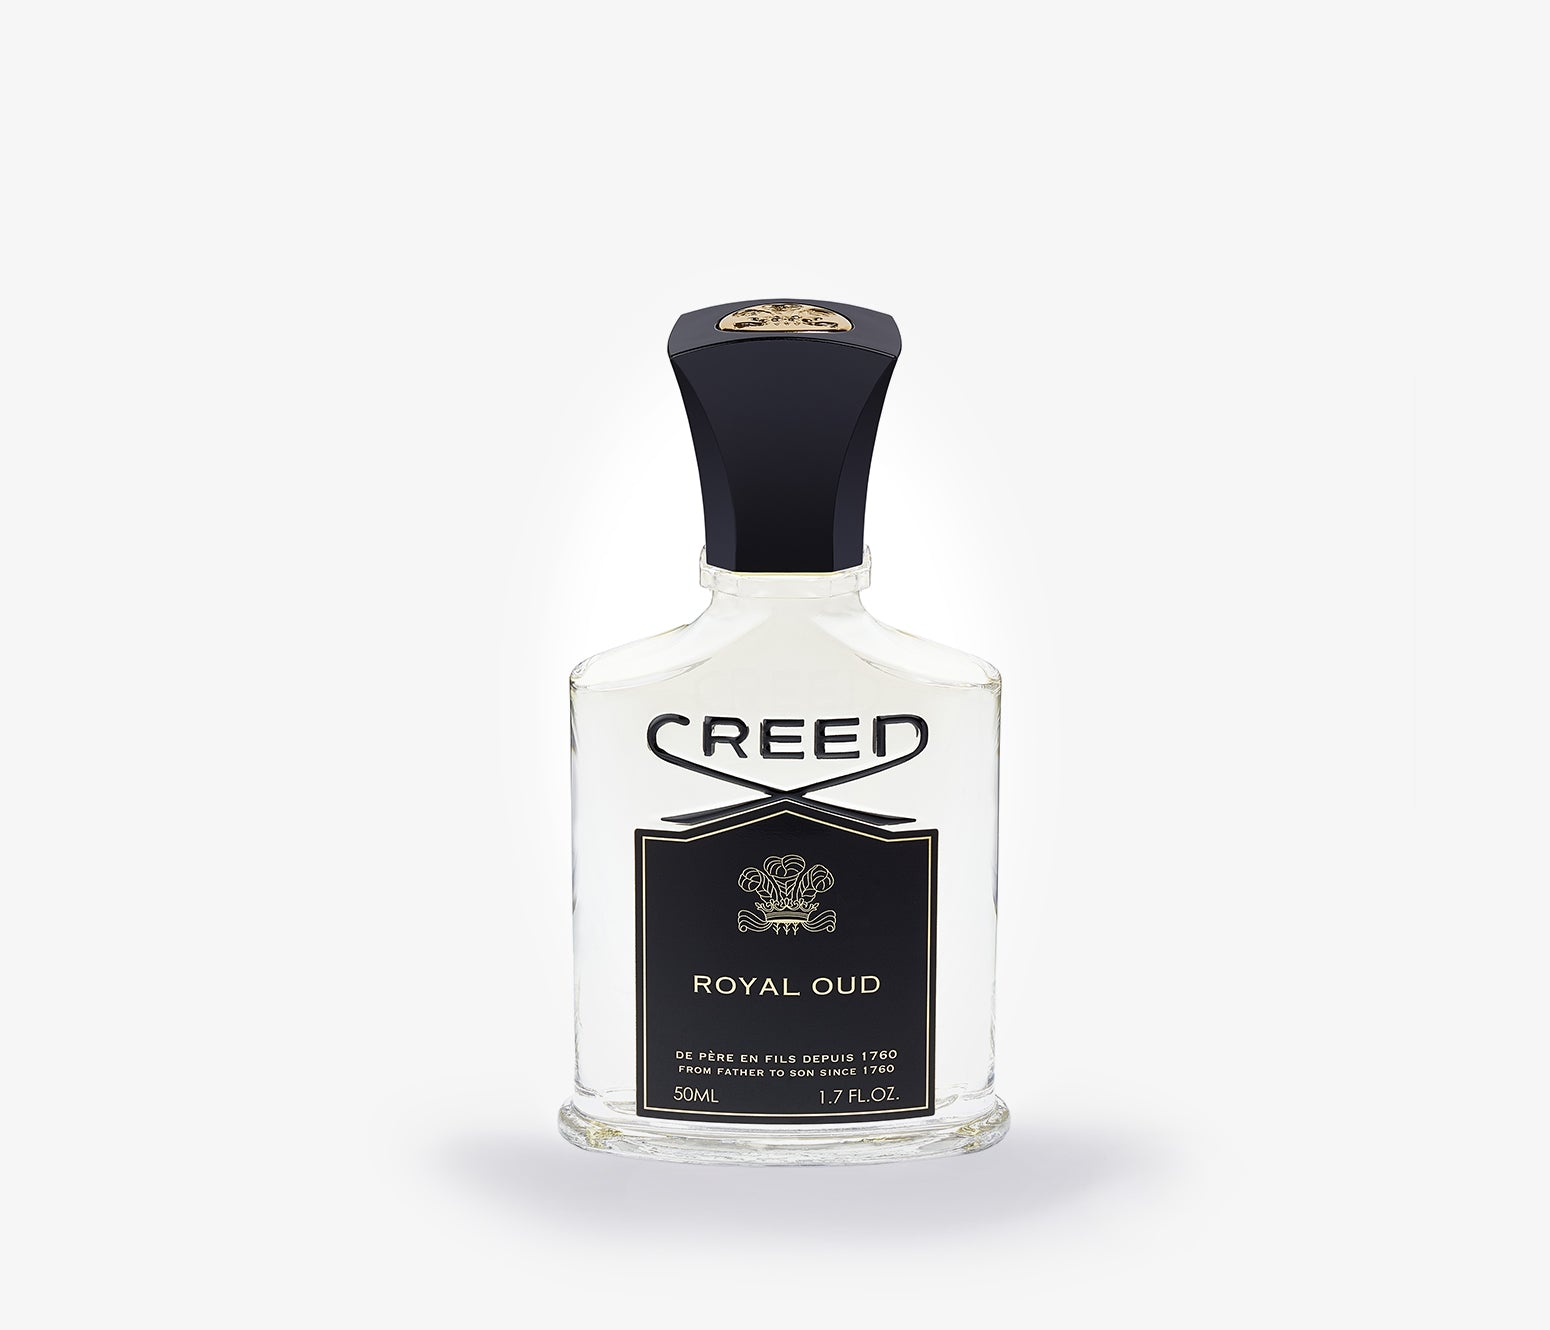 Creed - Royal Oud - 100ml - OVR001 - Product Image - Fragrance - Les Senteurs